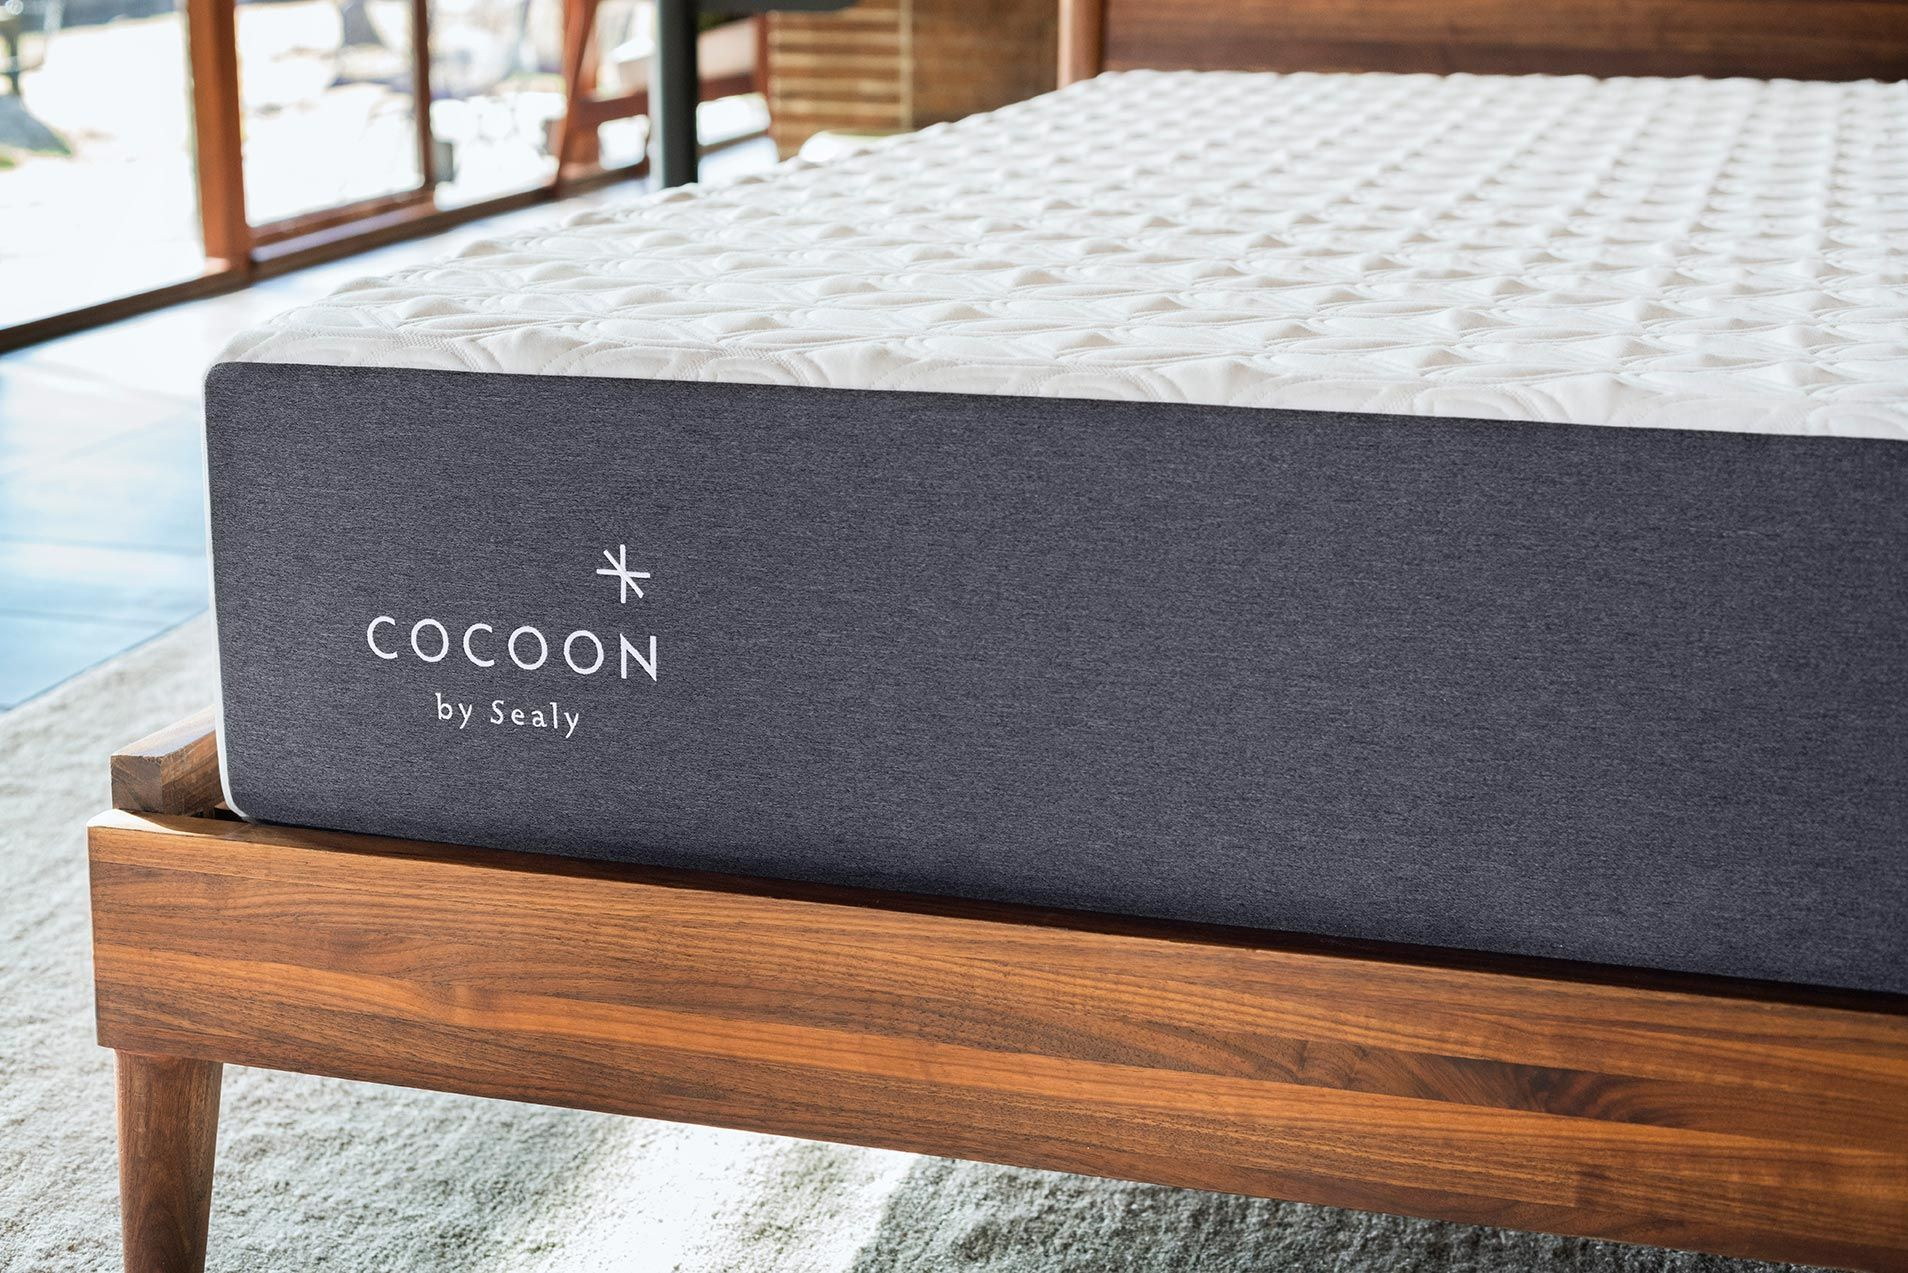 Cocoon Classic Cocoon By Sealy Best Mattress Mattress Bedroom